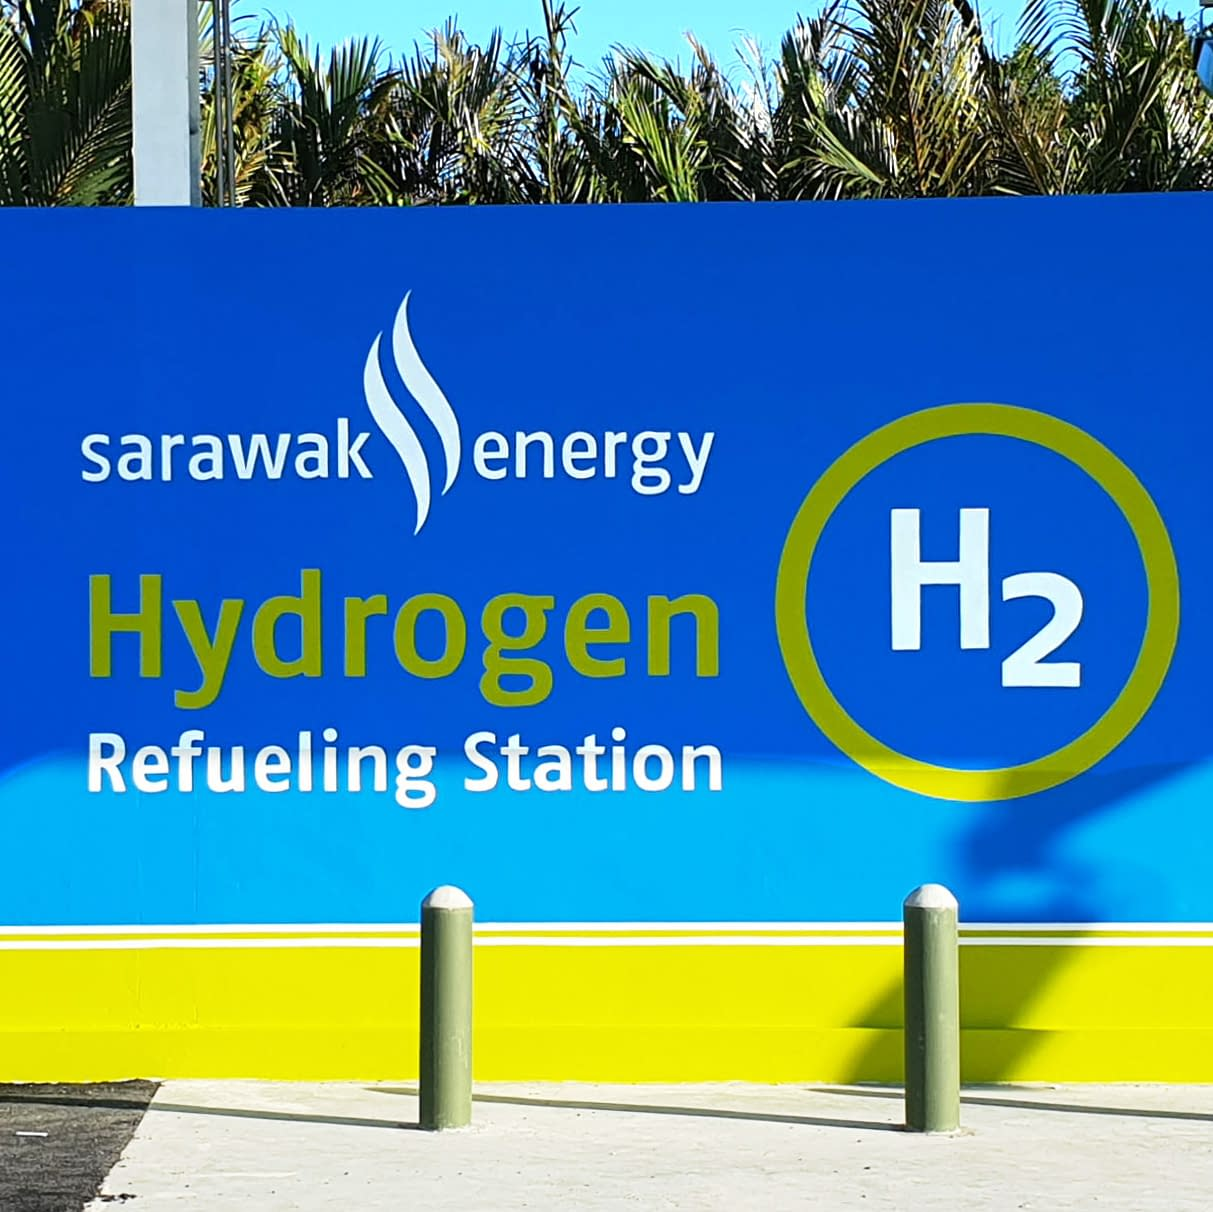 hydrogen fuel cell refuelling station wall painting at Sarawak Energy